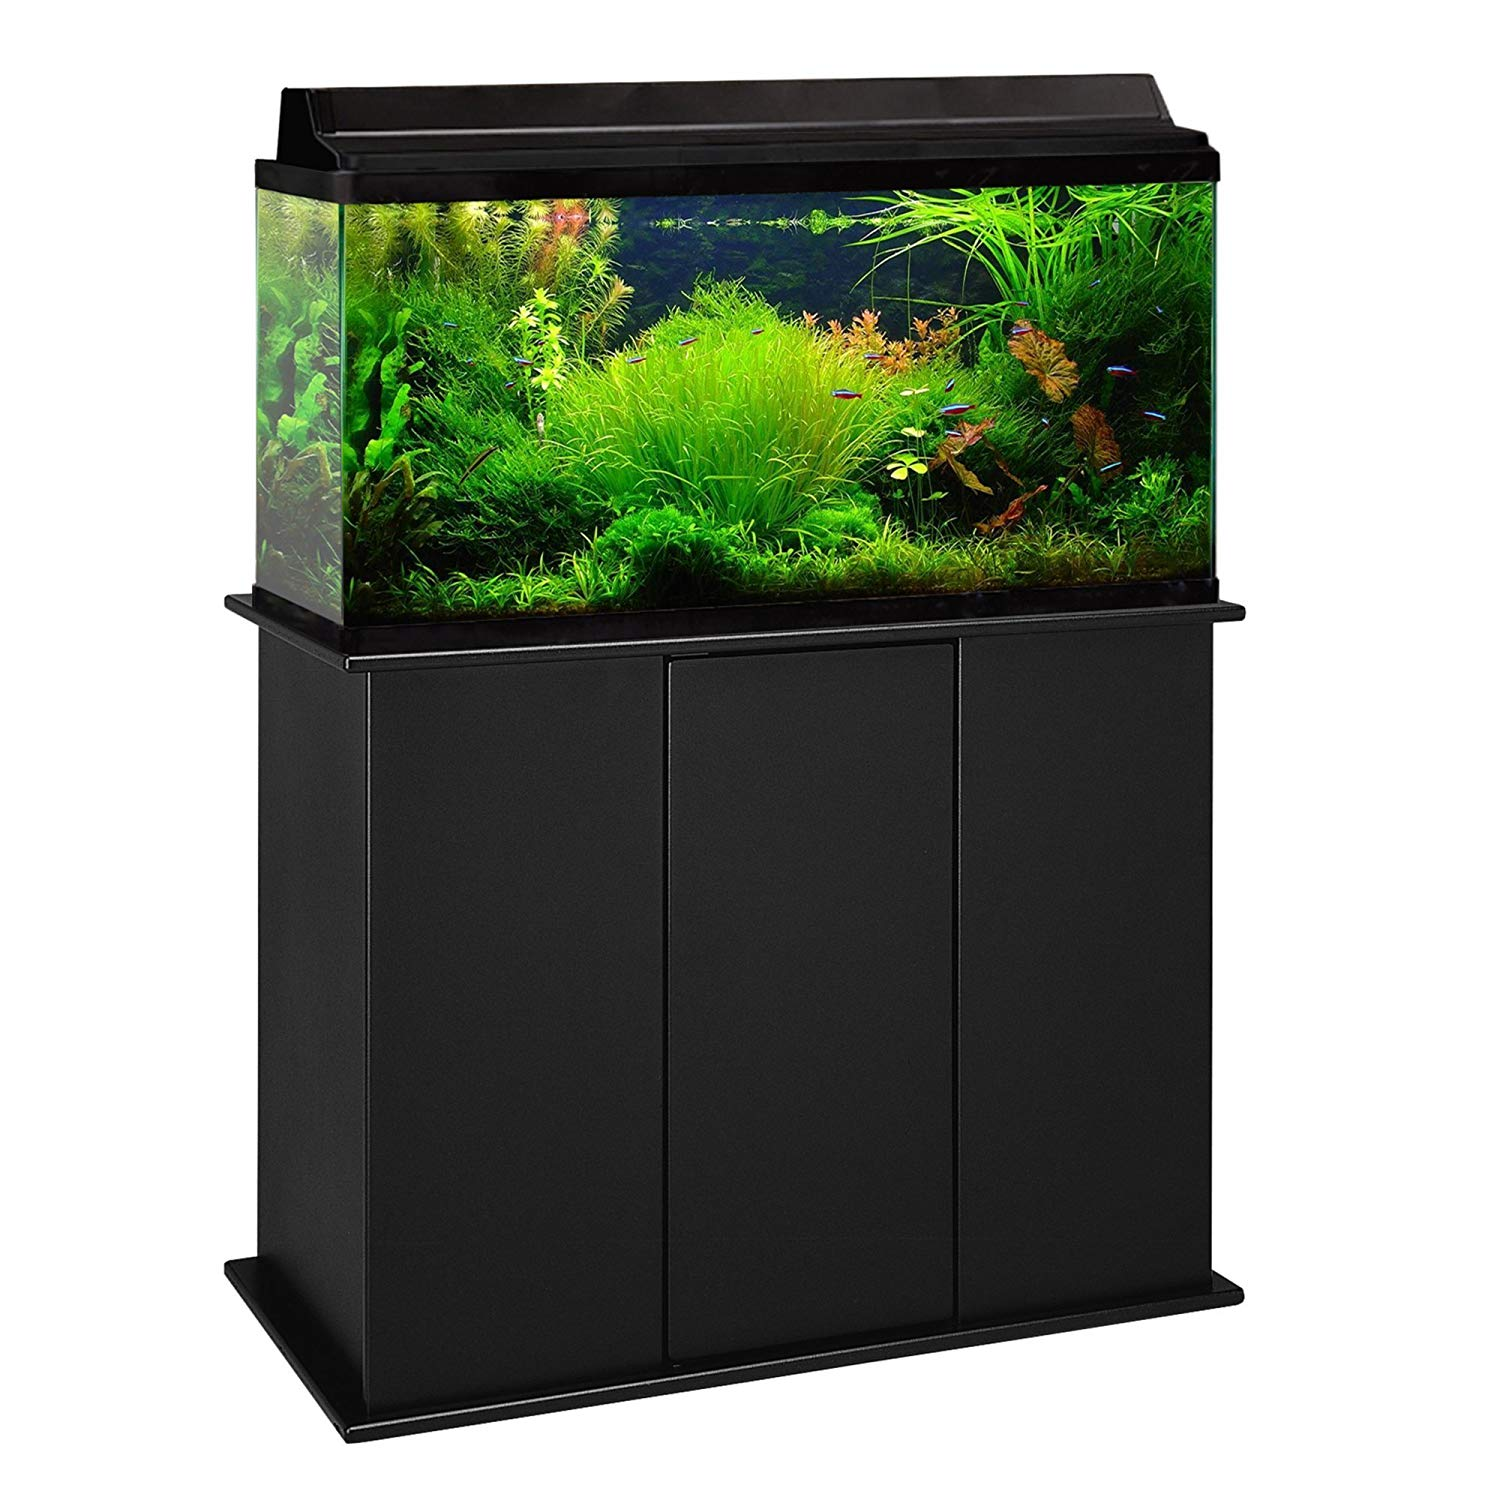 Easy Steps To Setting Up Your Own Aquarium At Home